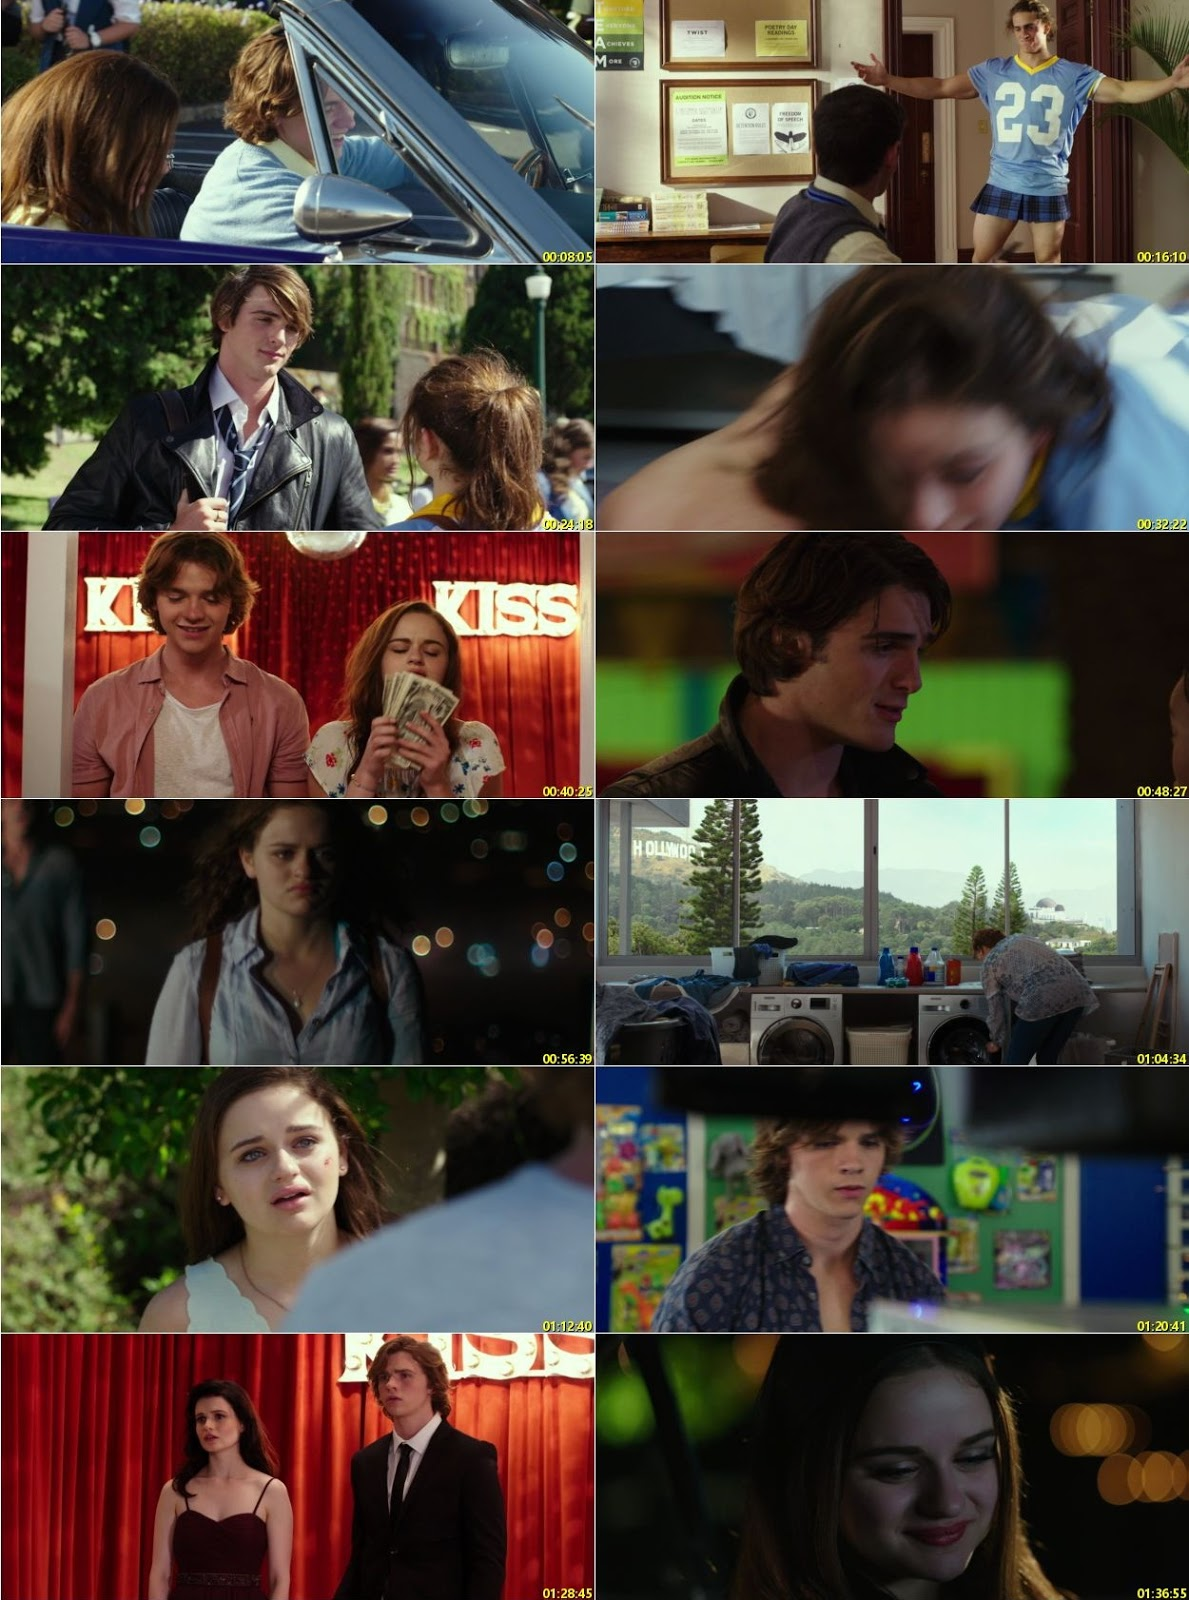 Watch Online Free The Kissing Booth (2018) Hindi Dual Audio 480p 720p WEB-DL